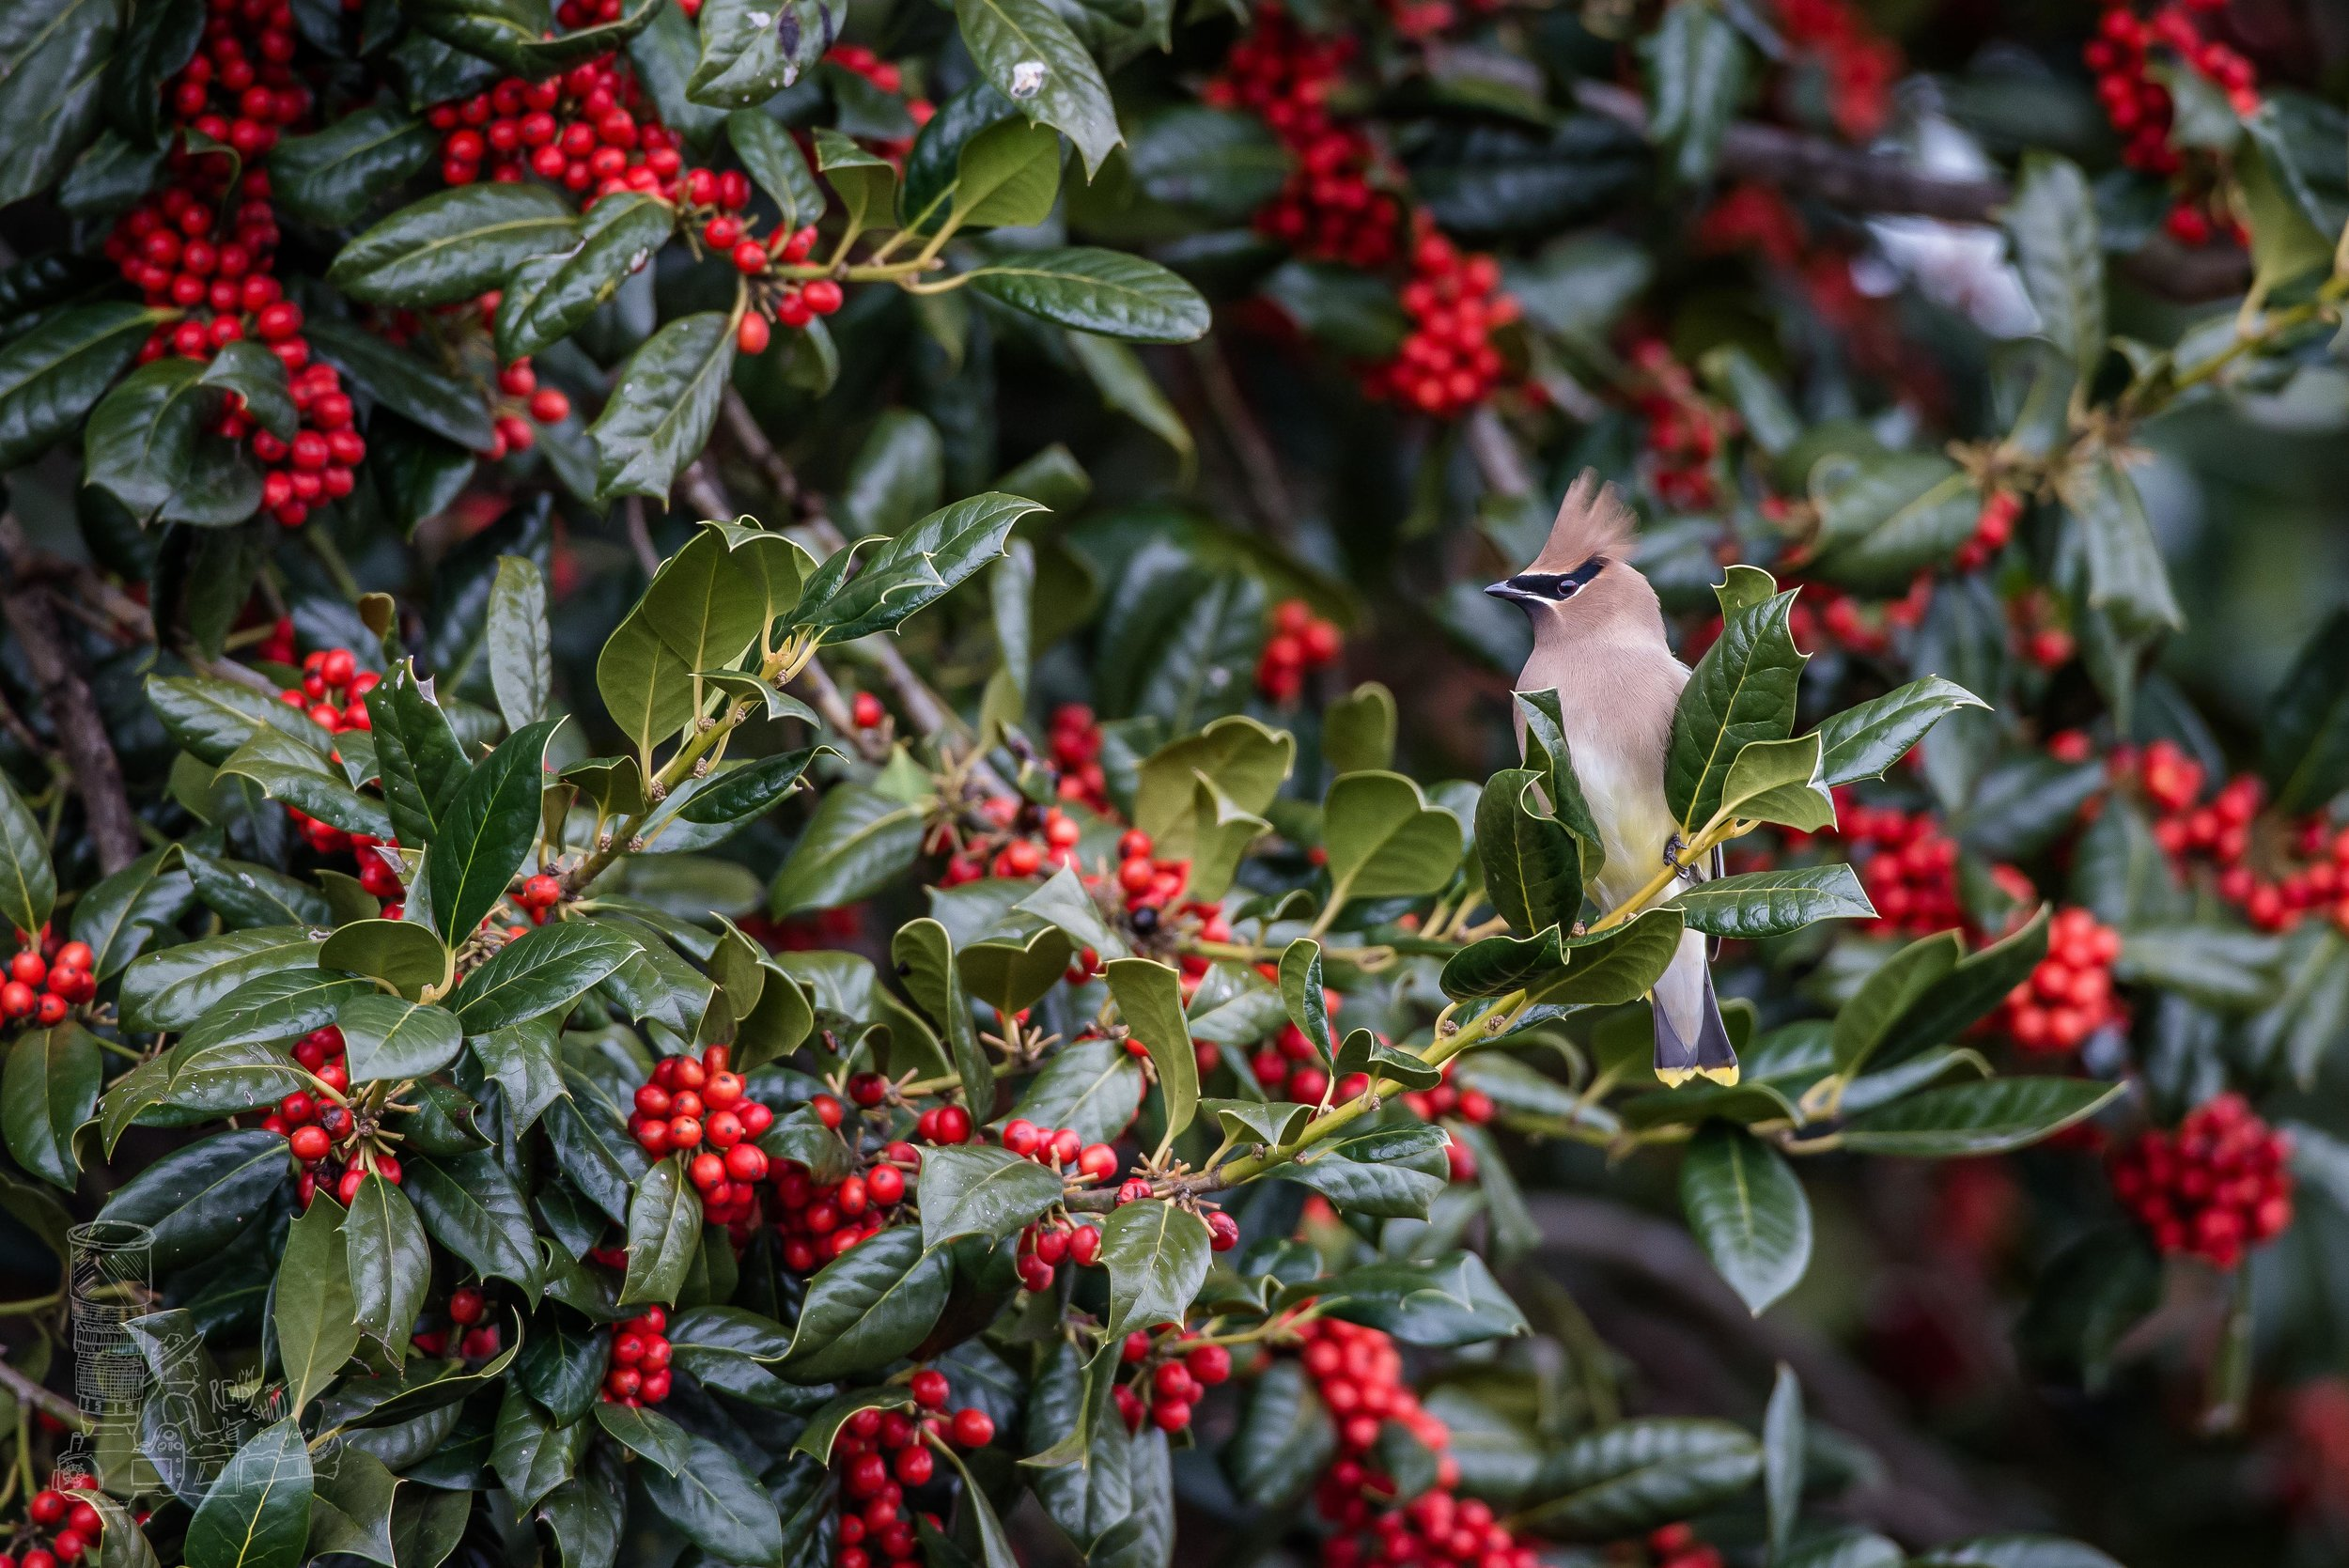 Cedar Waxwing in the Holly